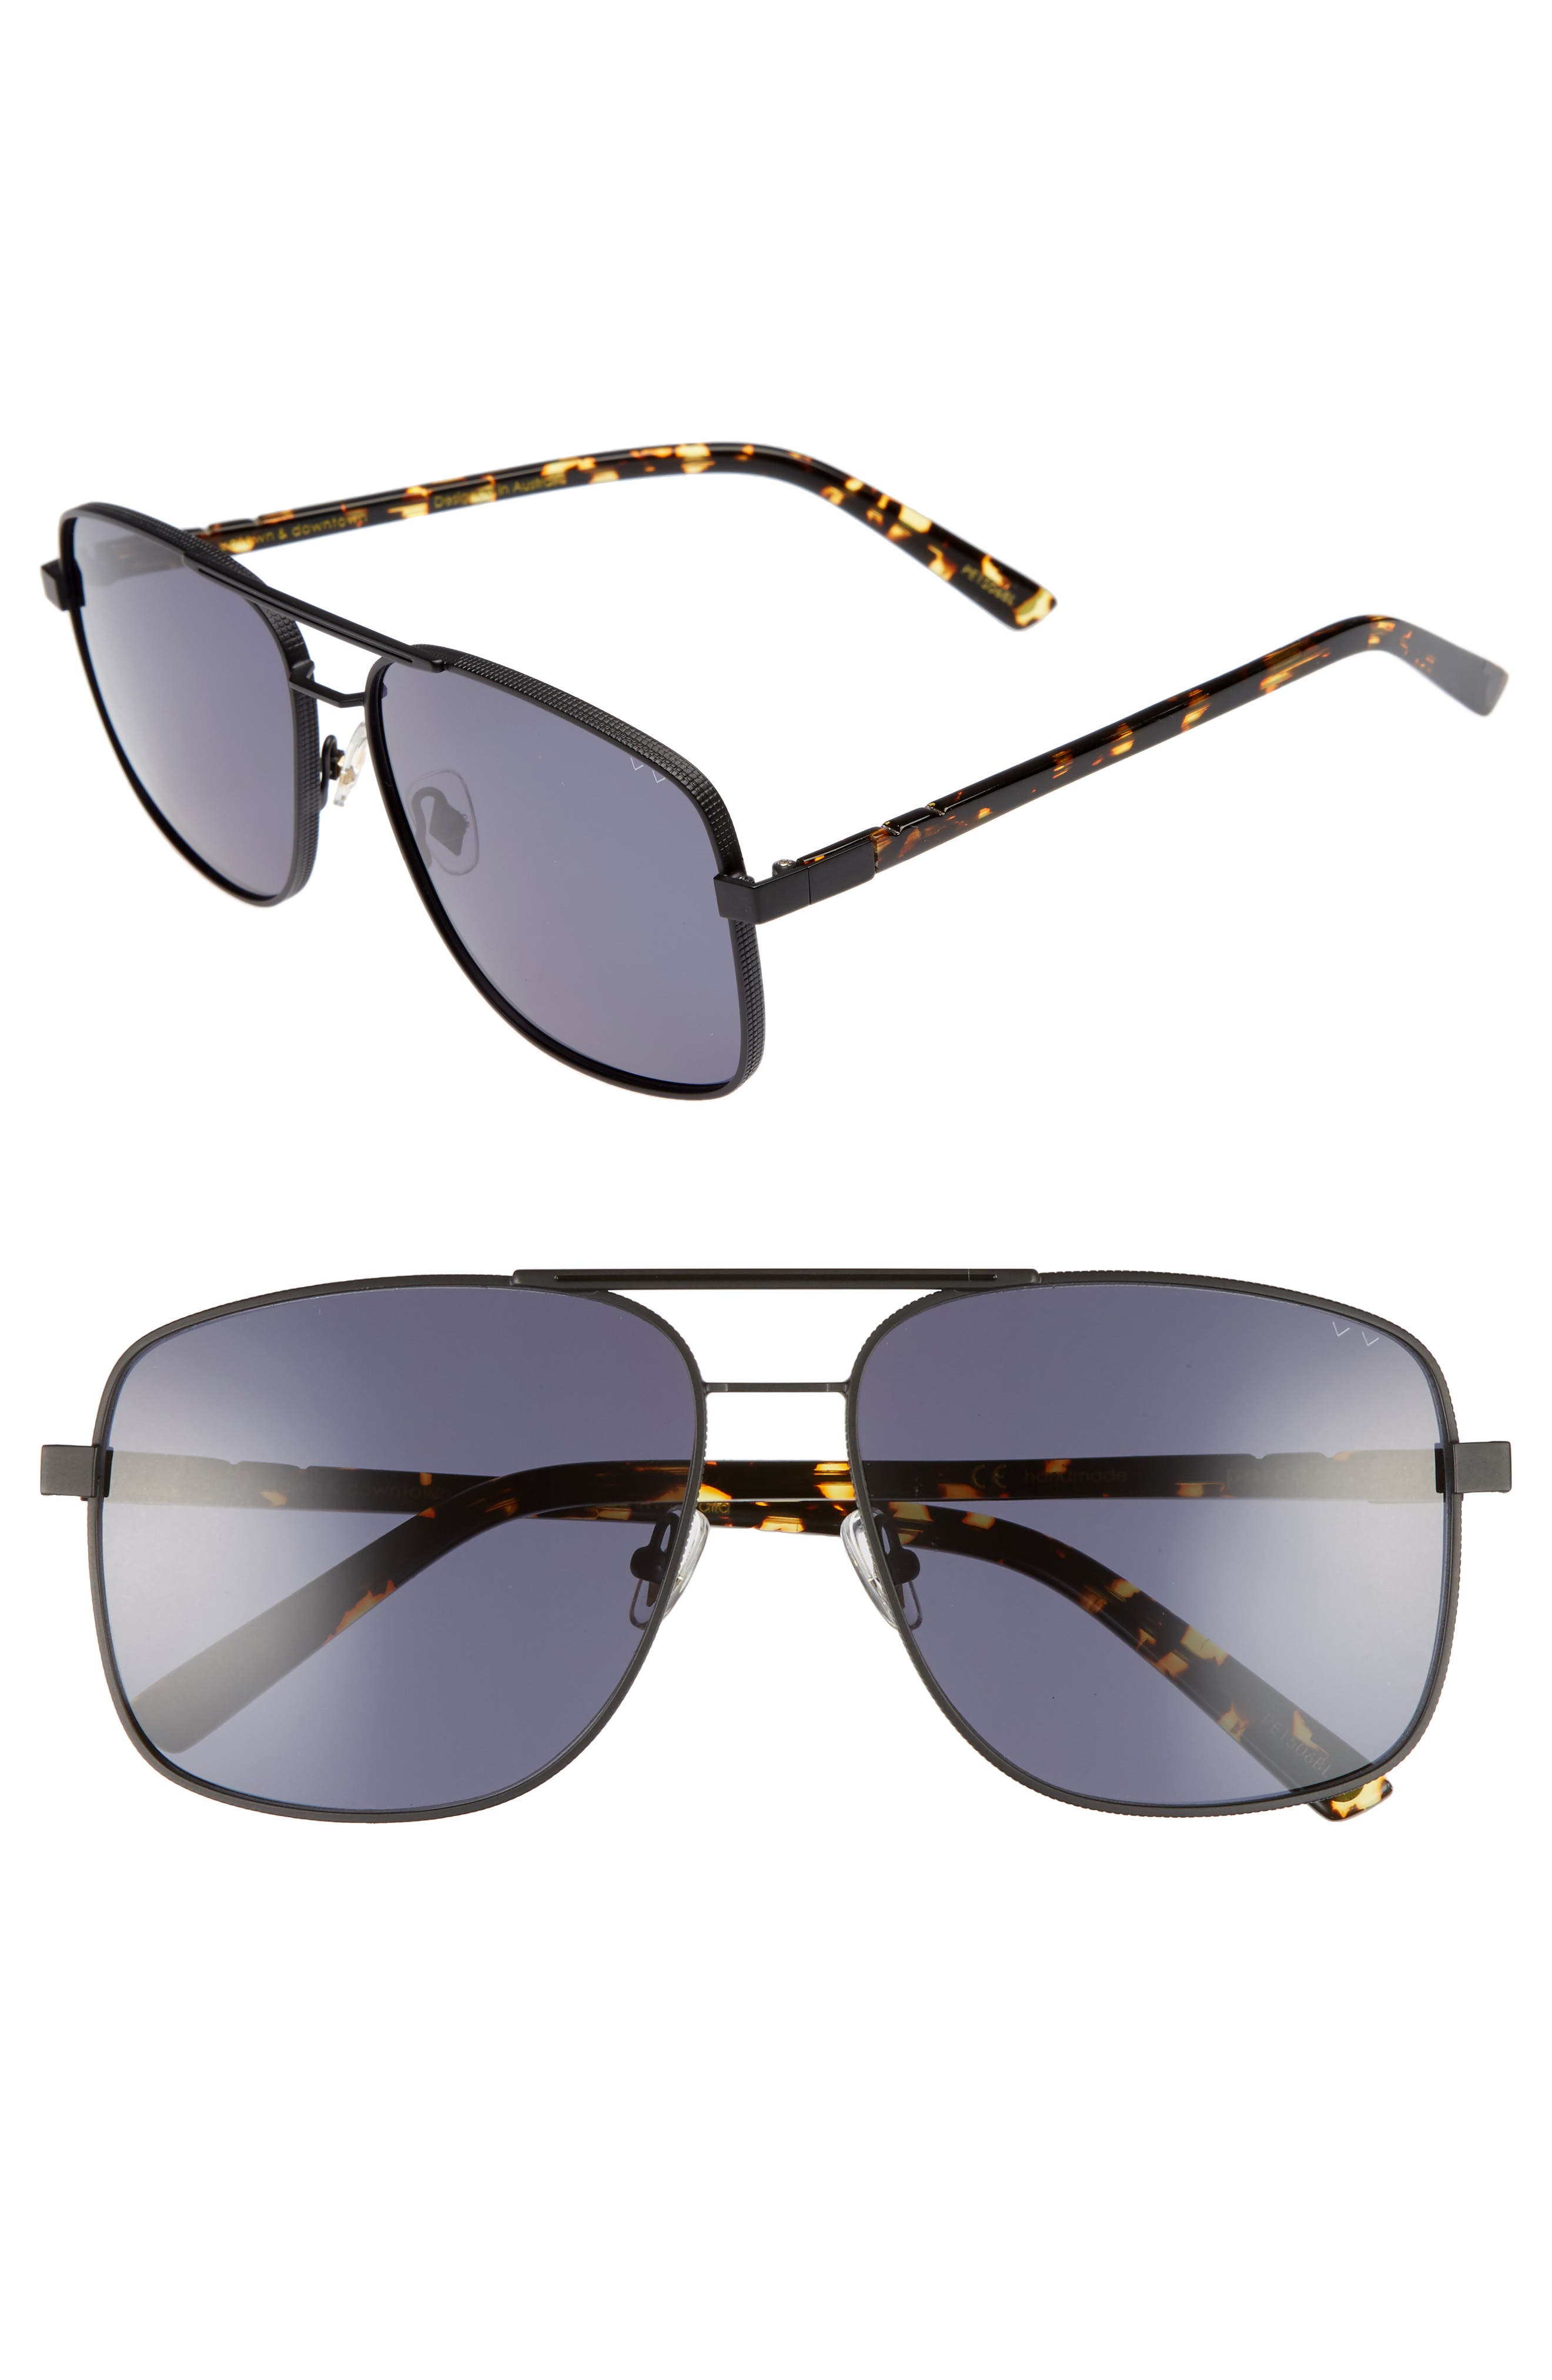 Uptown & Downtown 58mm Aviator Sunglasses,                         Main,                         color, Matte Black Grey